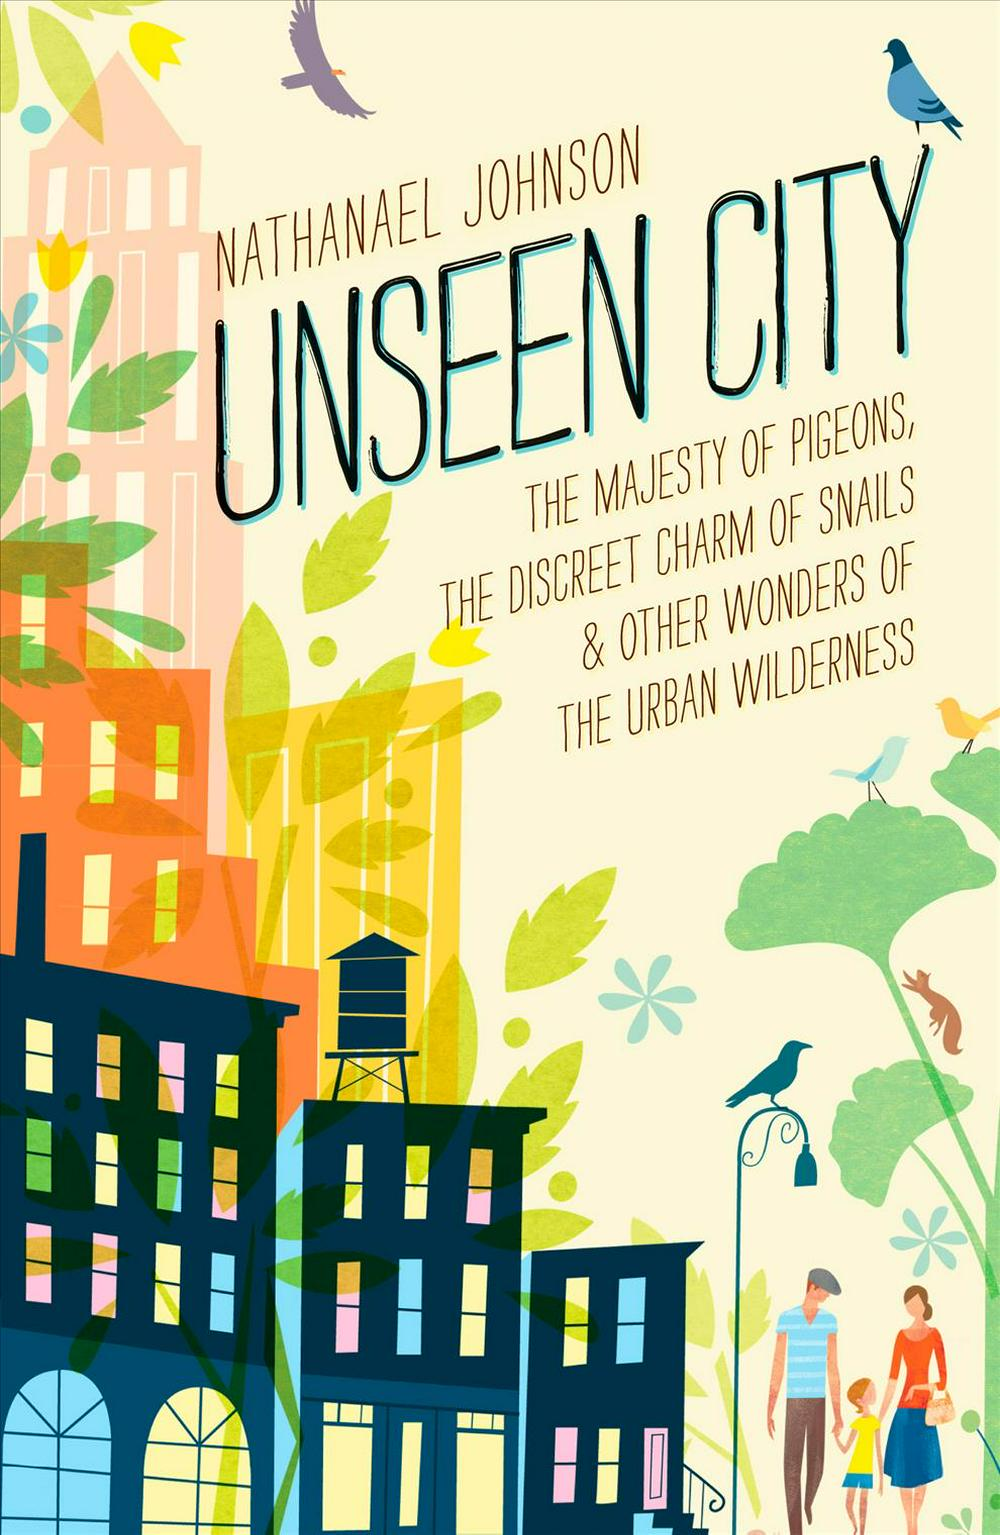 Unseen City: The Majesty of Pigeons, the Discrete Charm of Snails, and Other Wonders of the Urban Wilderness by Nathanael Johnson, ISBN: 9781623363857